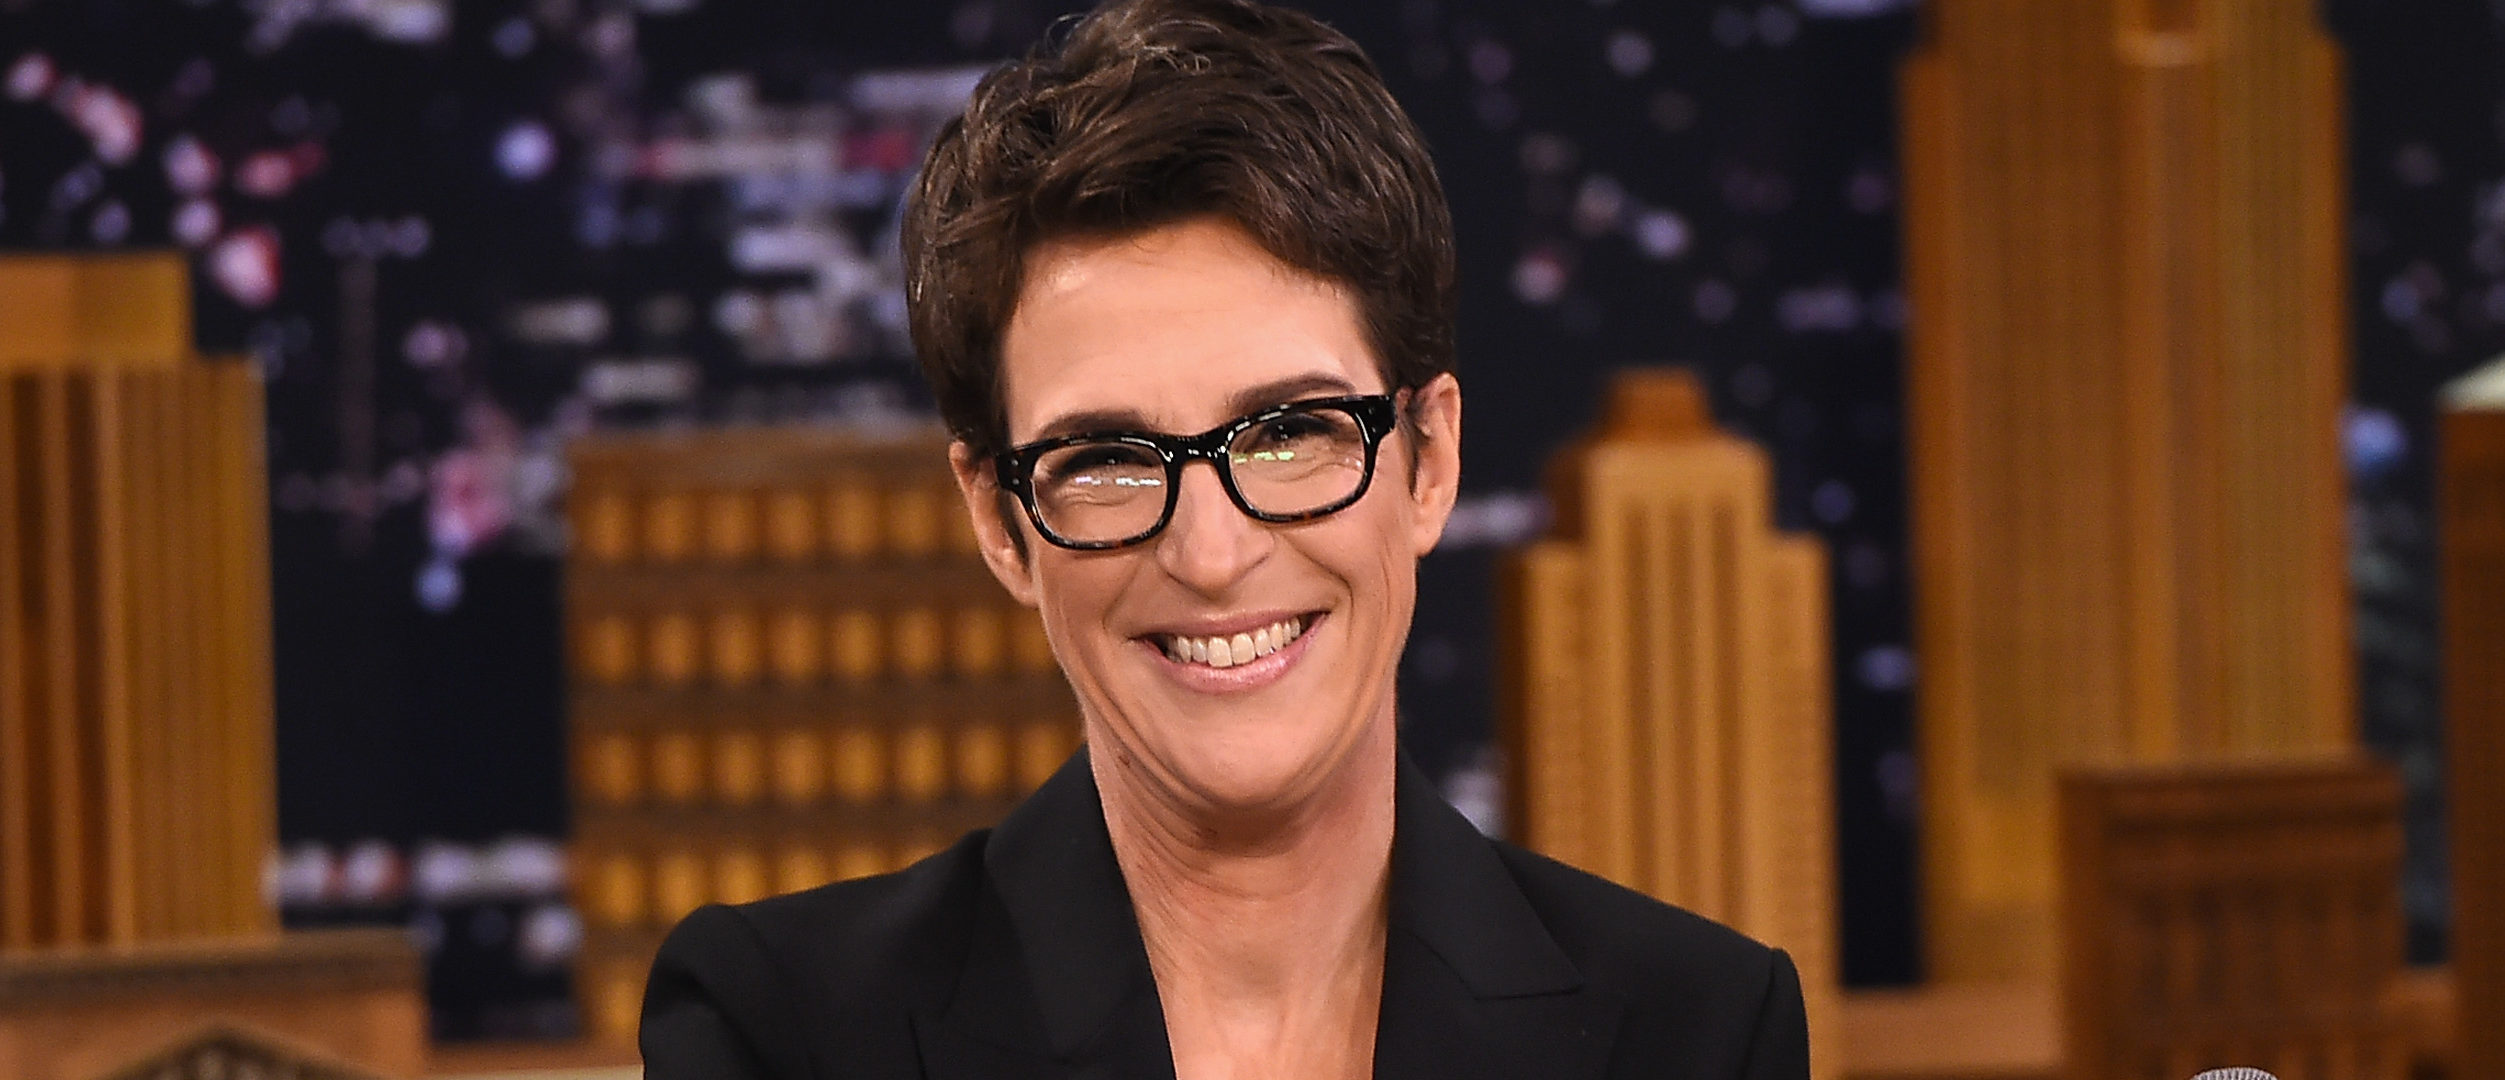 "Rachel Maddow Visits ""The Tonight Show Starring Jimmy Fallon"" at Rockefeller Center on March 15, 2017 in New York City. (Photo by Theo Wargo/Getty Images for NBC)"